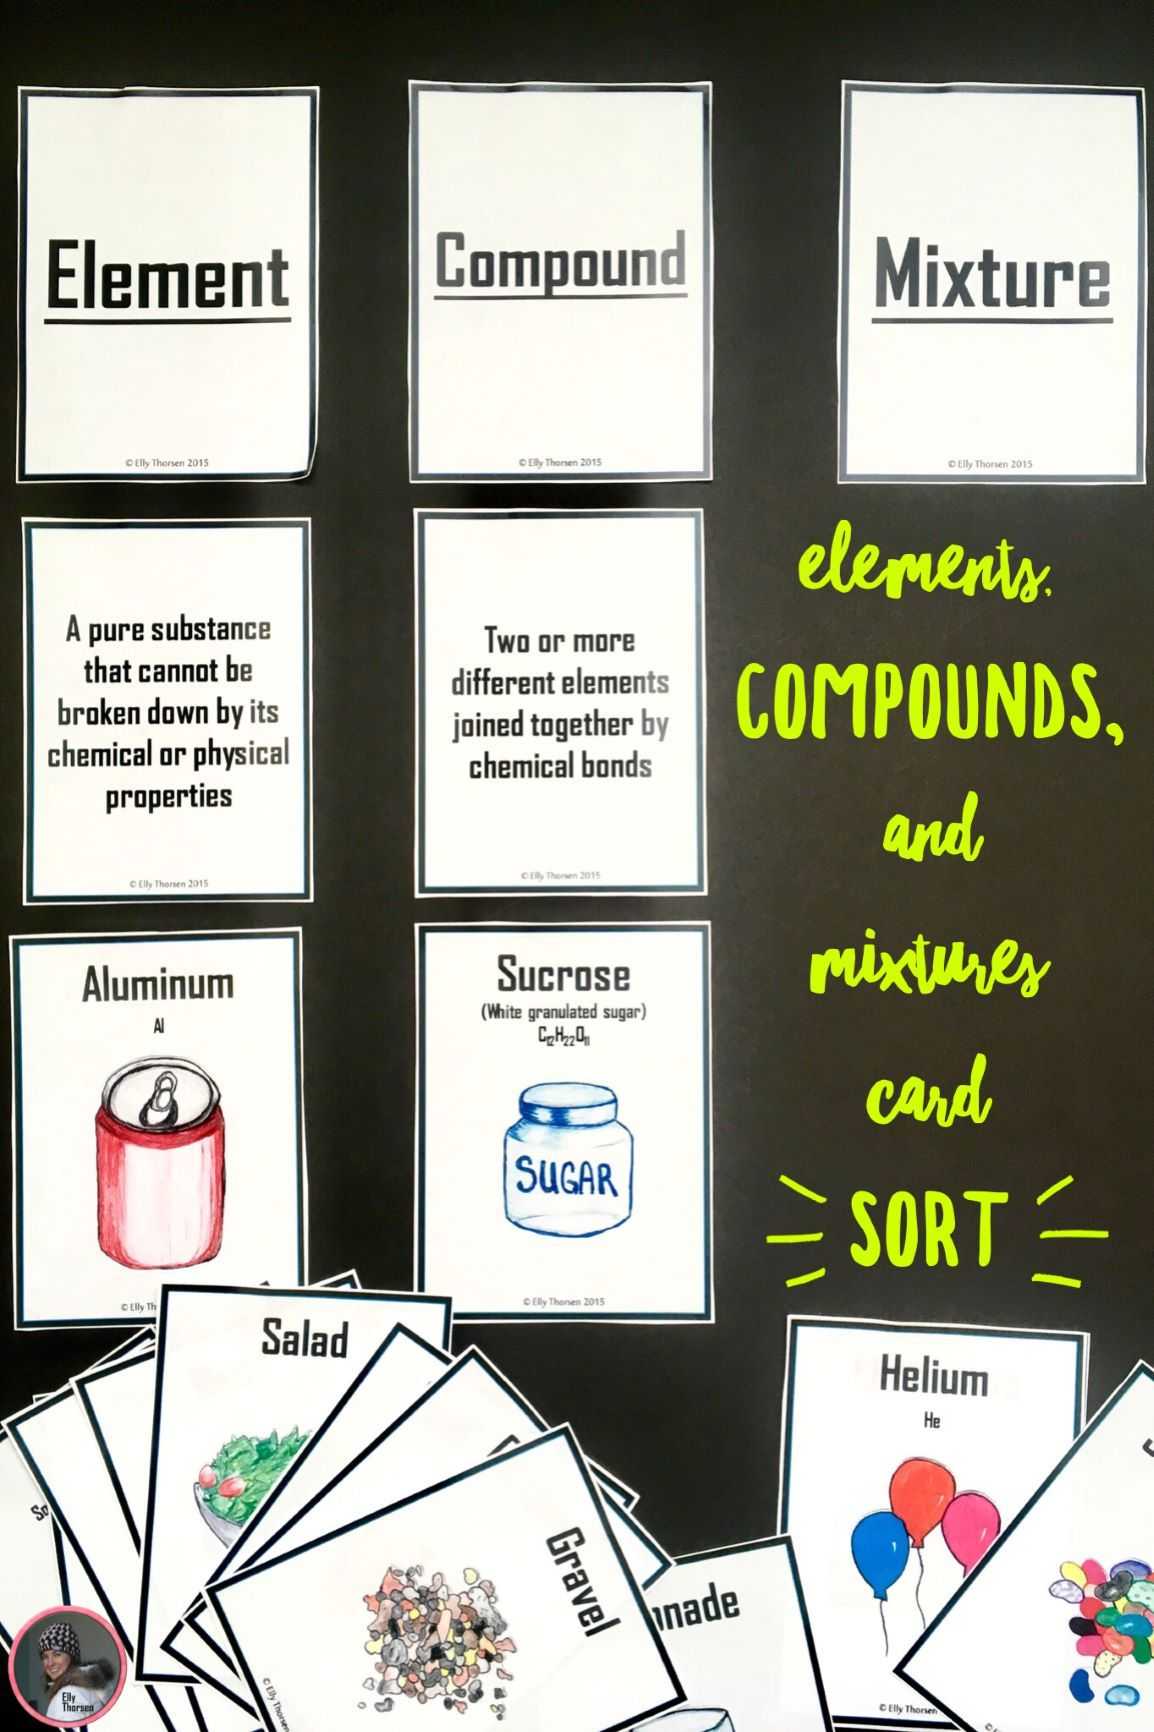 Elements Compounds And Mixtures Card Sorting Activity